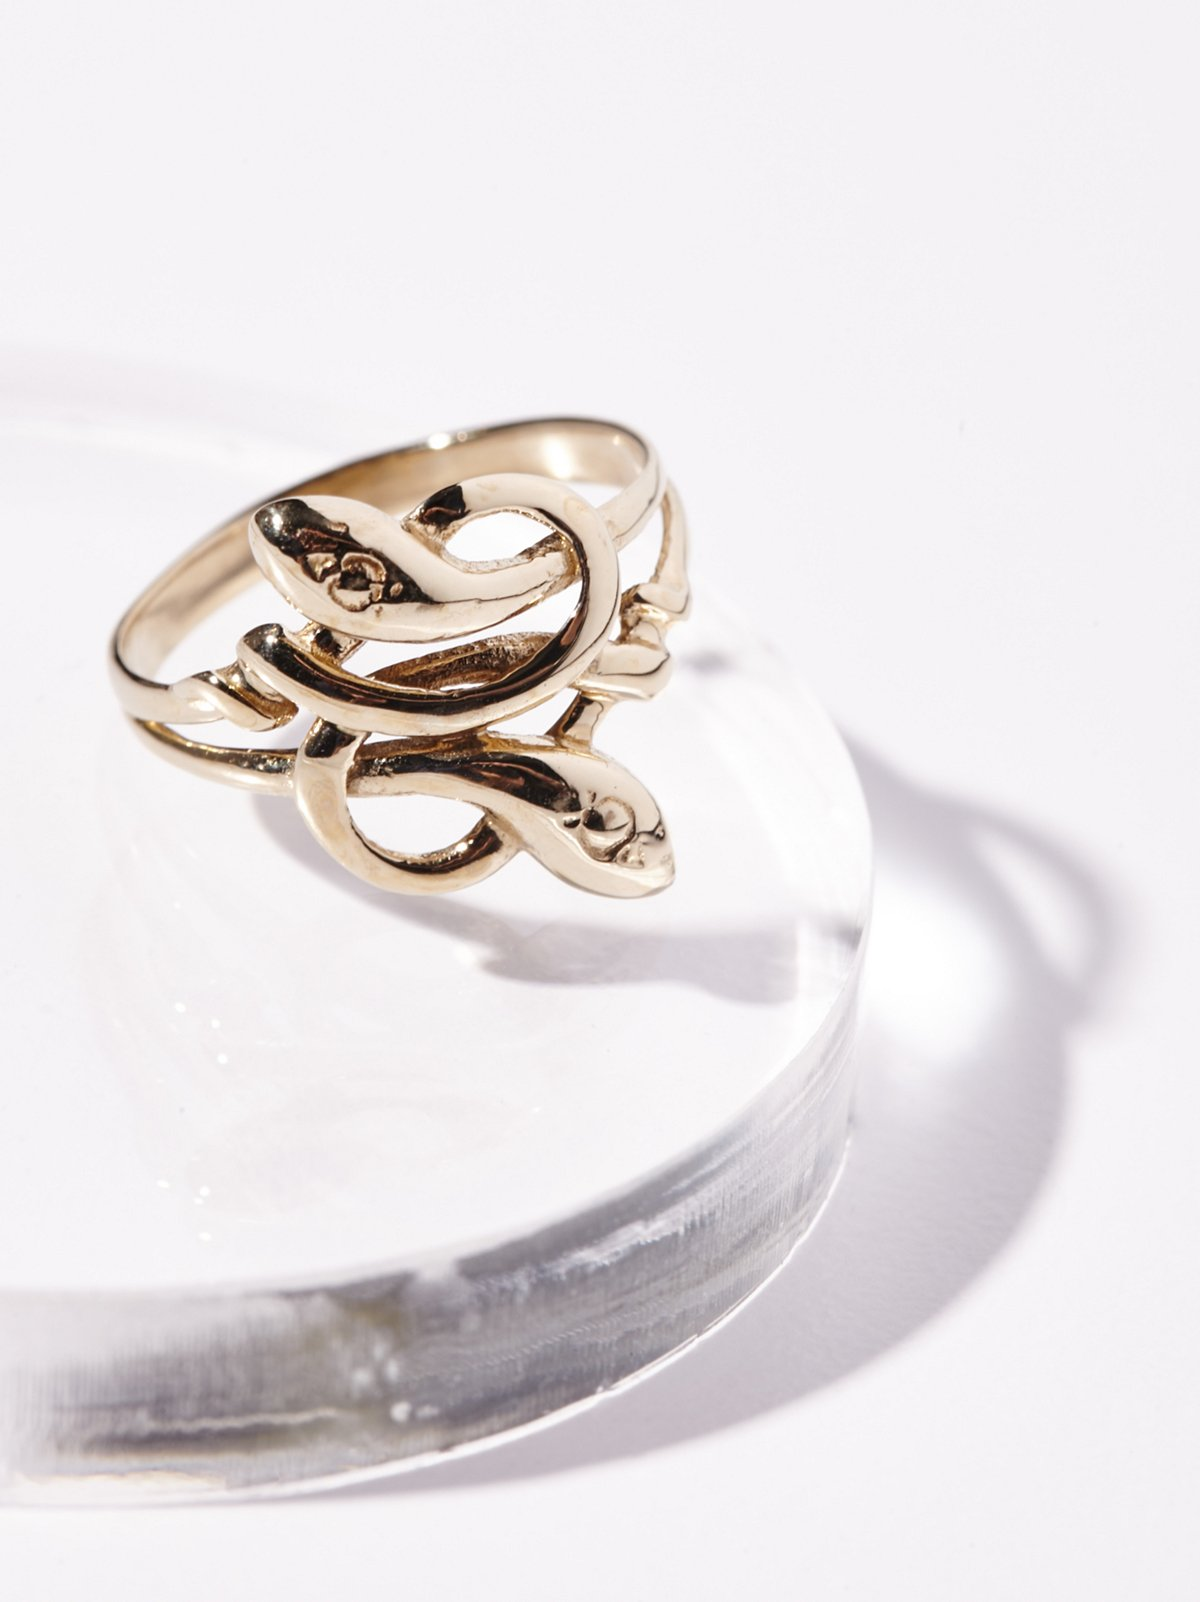 10k Love Knot Serpent Ring